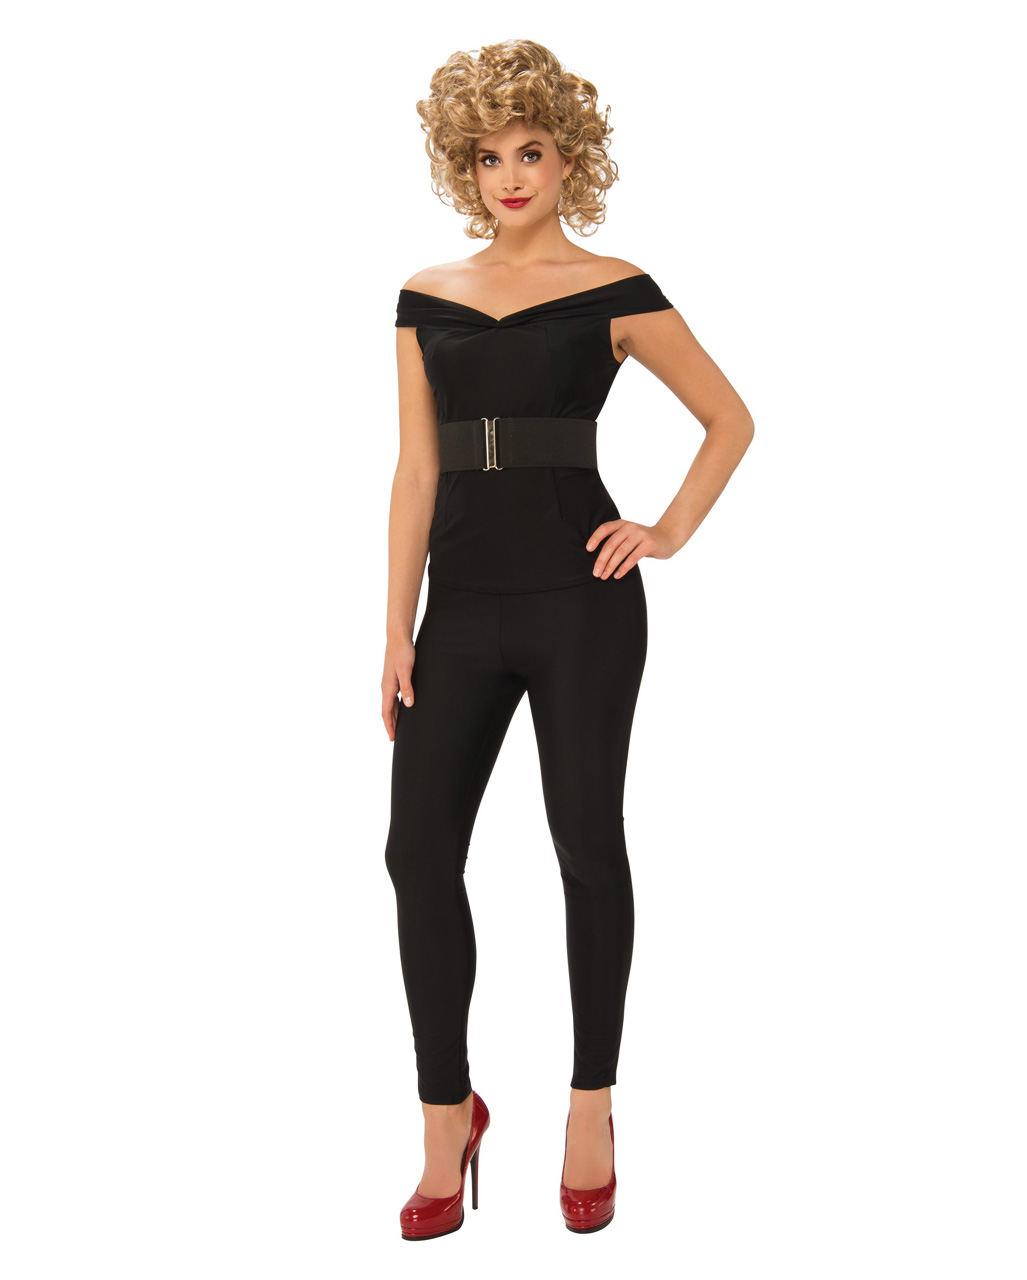 a9a31a5763 Grease Bad Sandy Ladies Costume Grease Costume | horror-shop.com